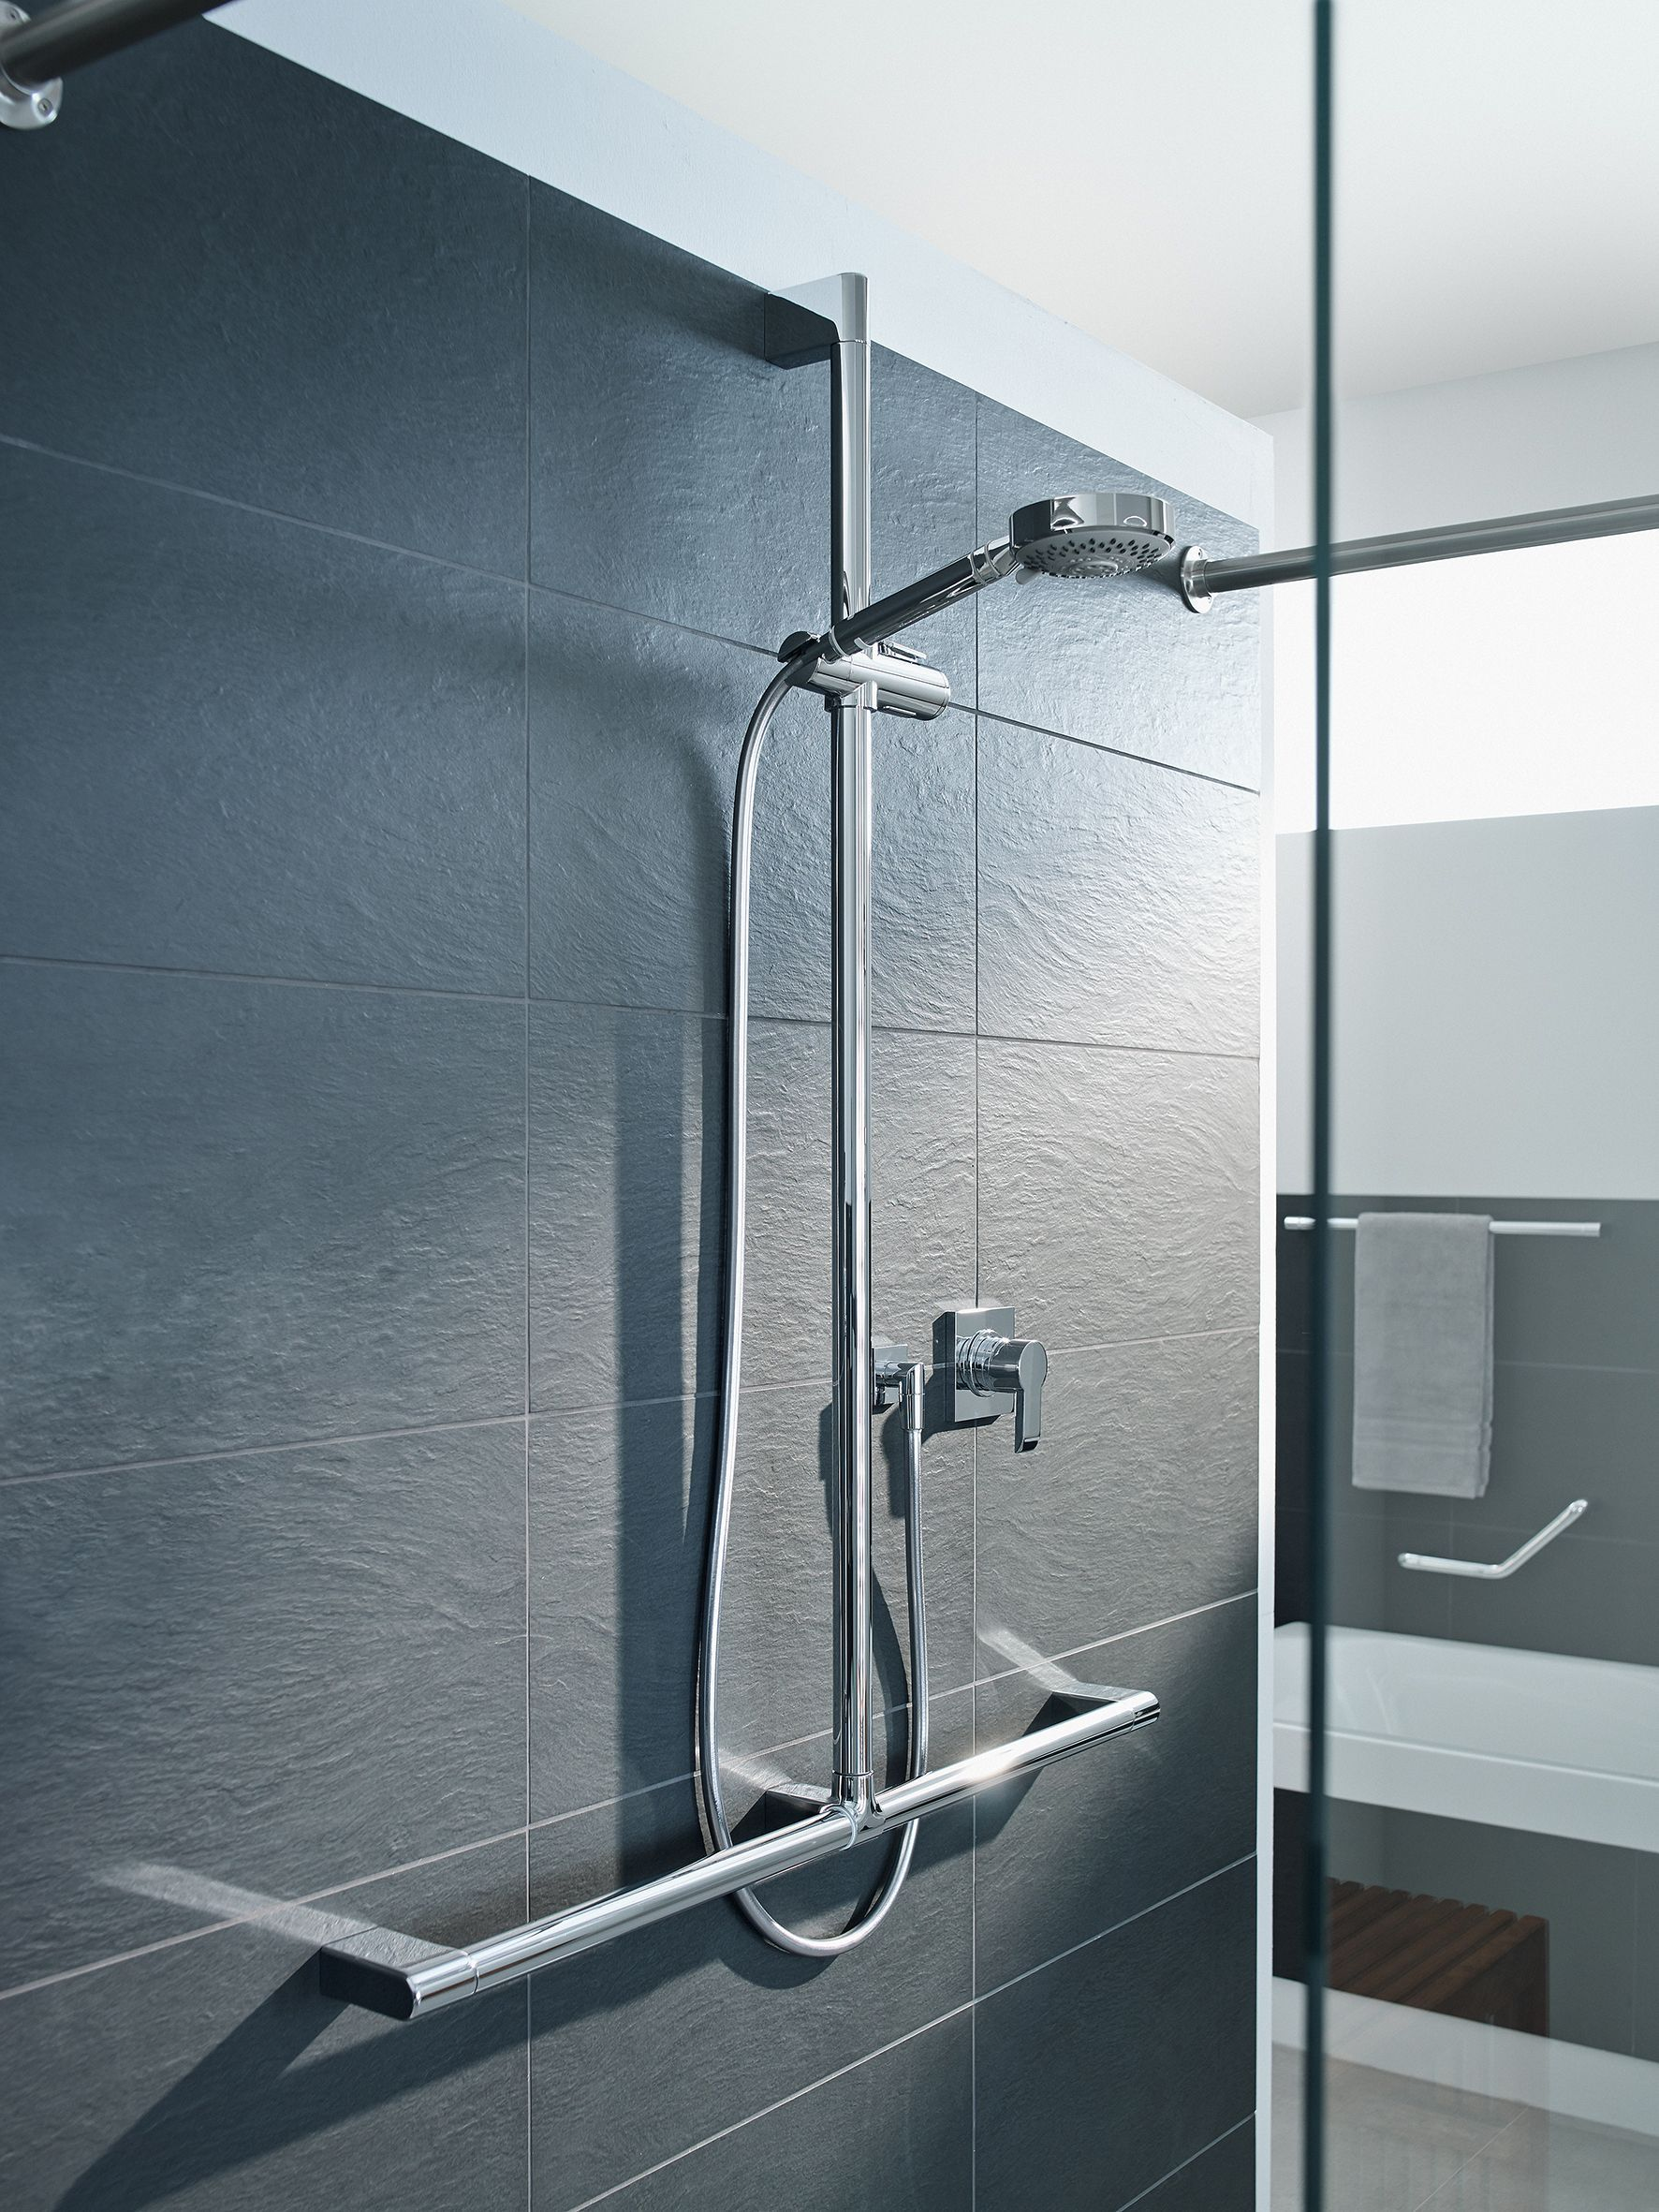 Shower Slide Rail with Grab Bar - luxury disabled bathrooms